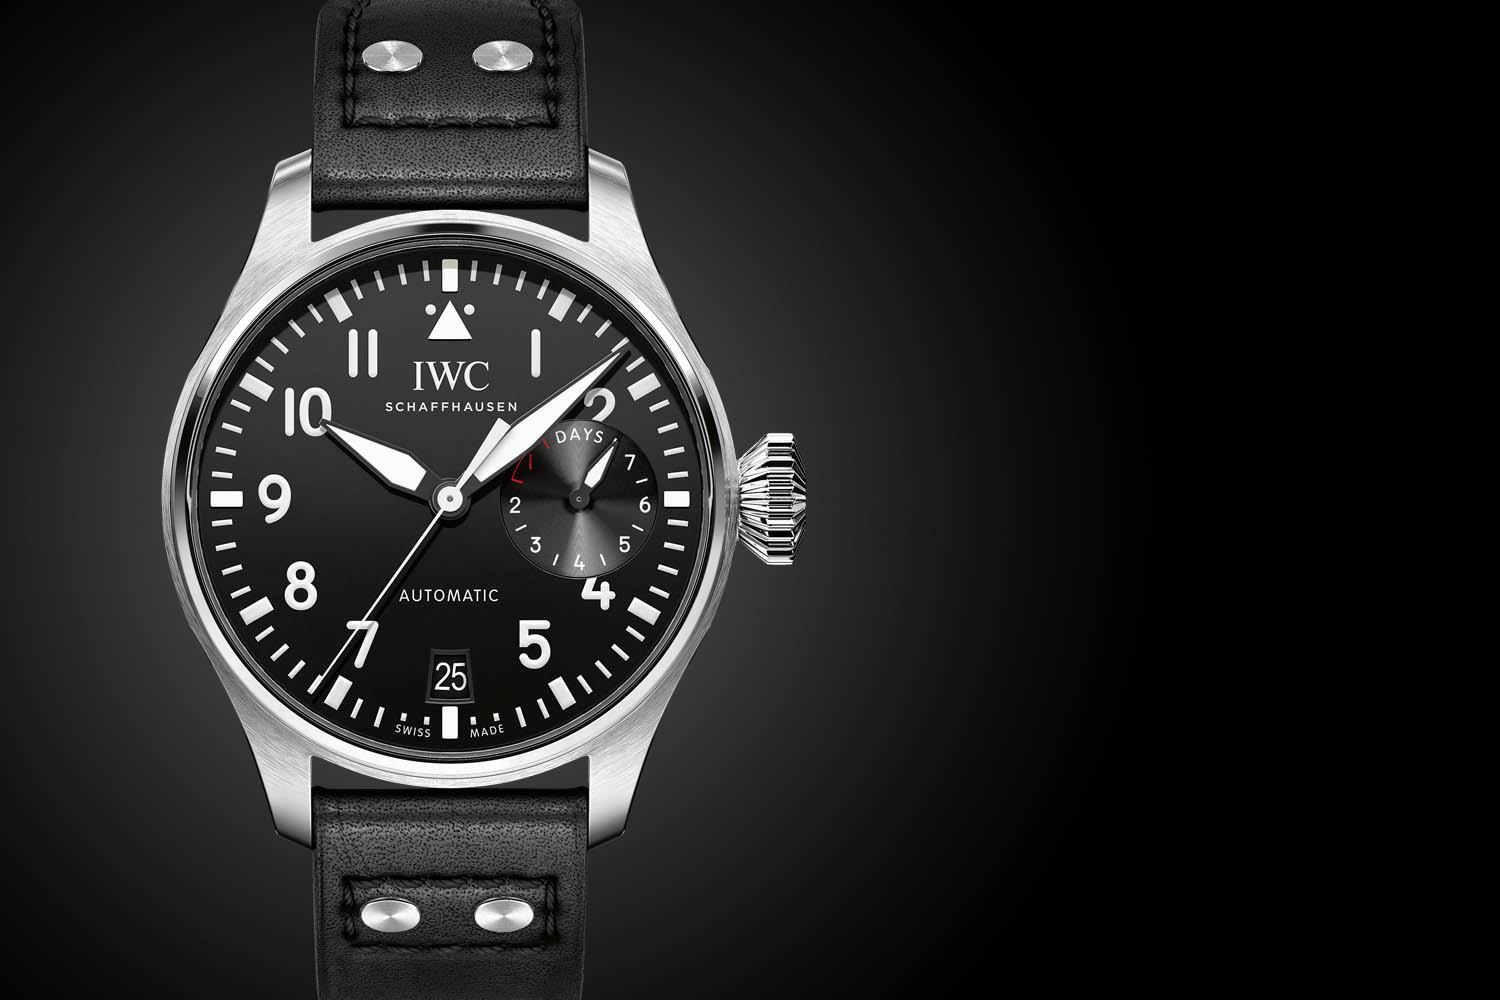 6abb0355525 SIHH 2016 - Introducing the new IWC Big Pilot s Watch IW500912 ...